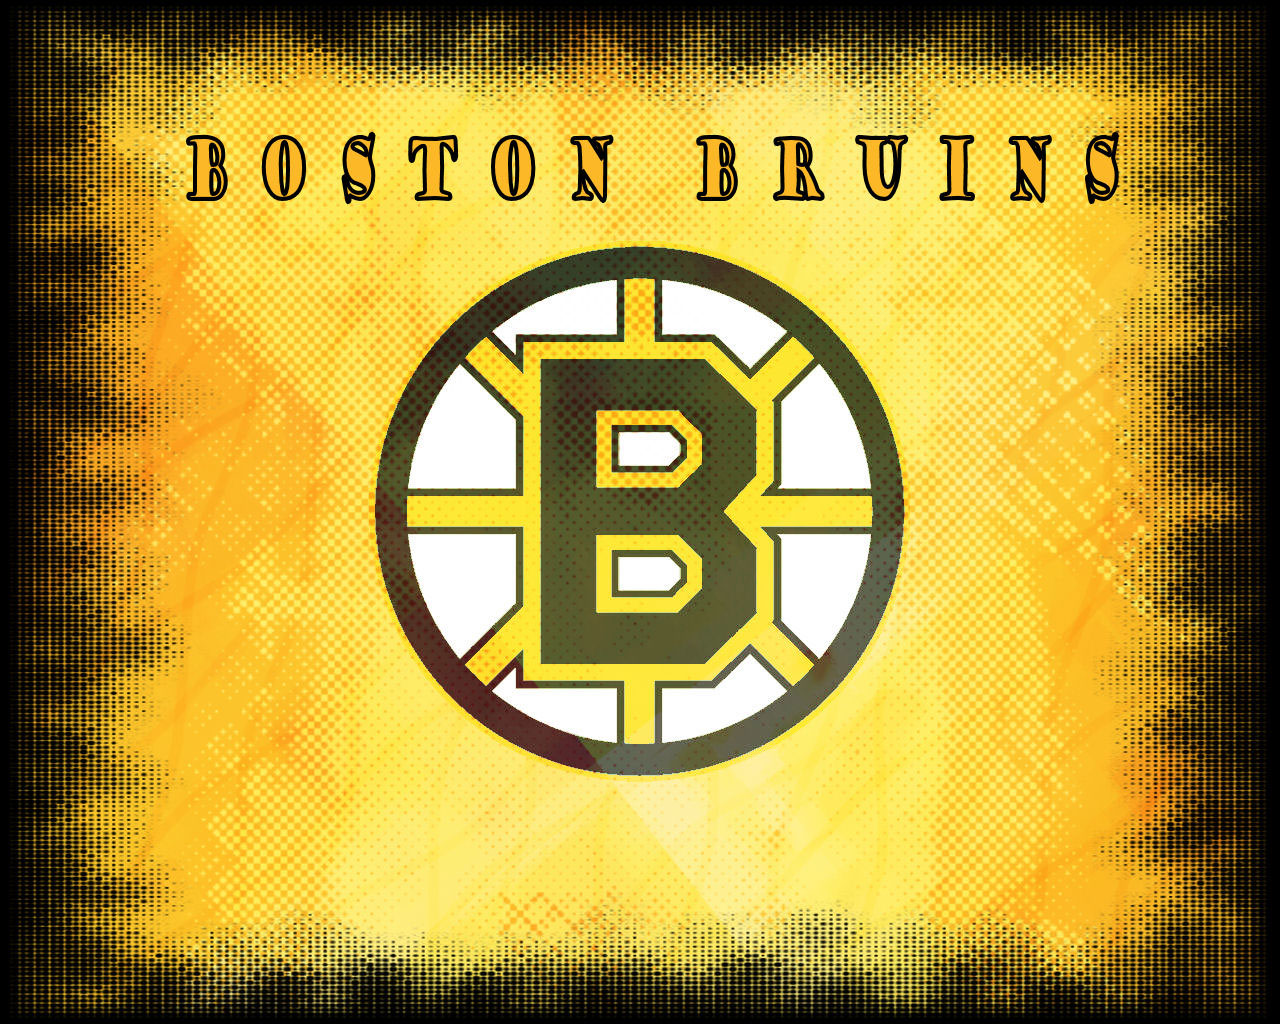 bruins wallpapers  WideWallpapers Collection of Boston Bruins Wallpapers on HDWallpapers 1280x1024